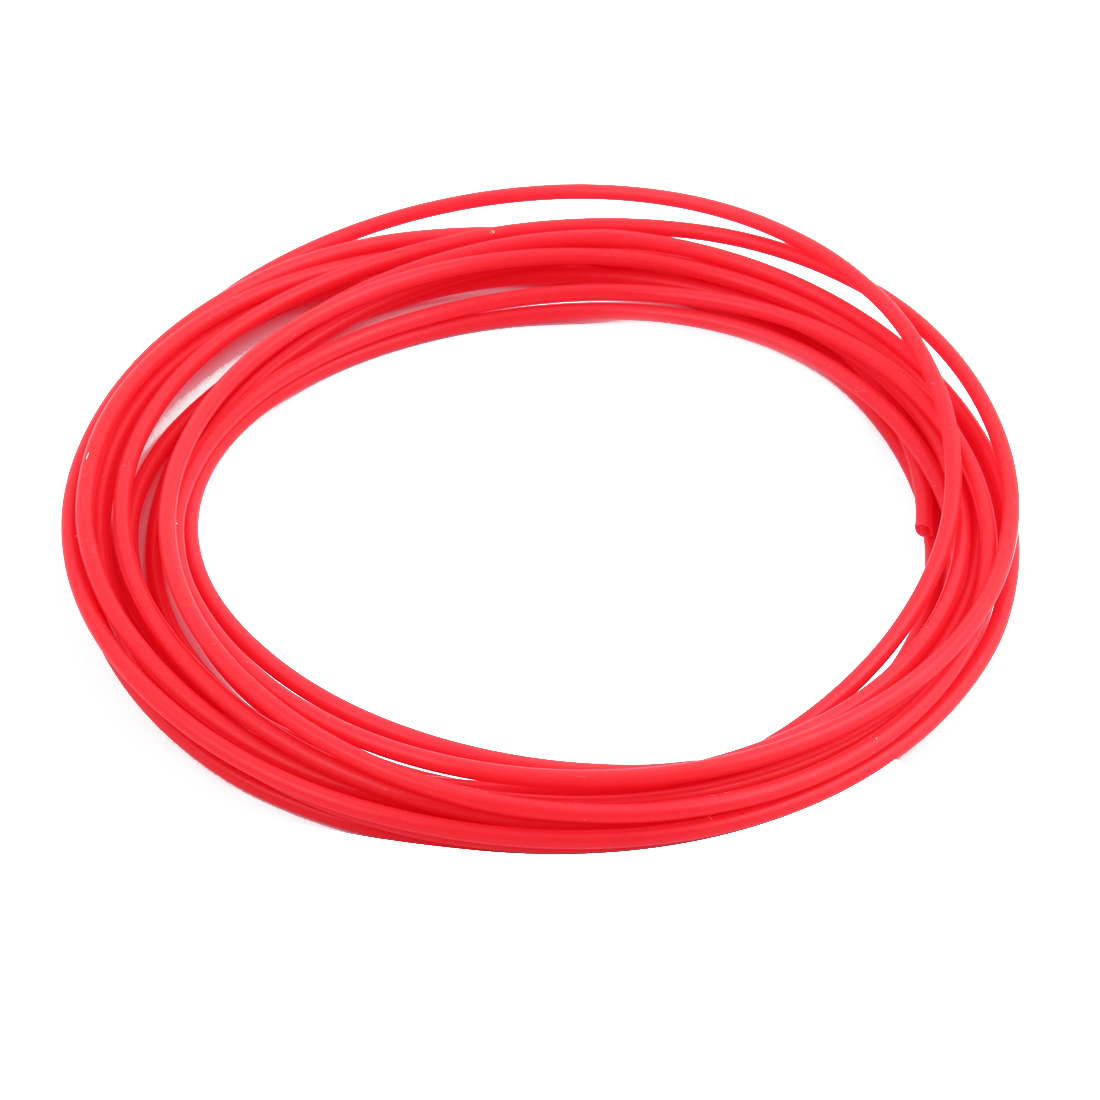 1.93mmx2.33mm PTFE Resistant High Temperature Red Tubing 5 Meters 16.4Ft